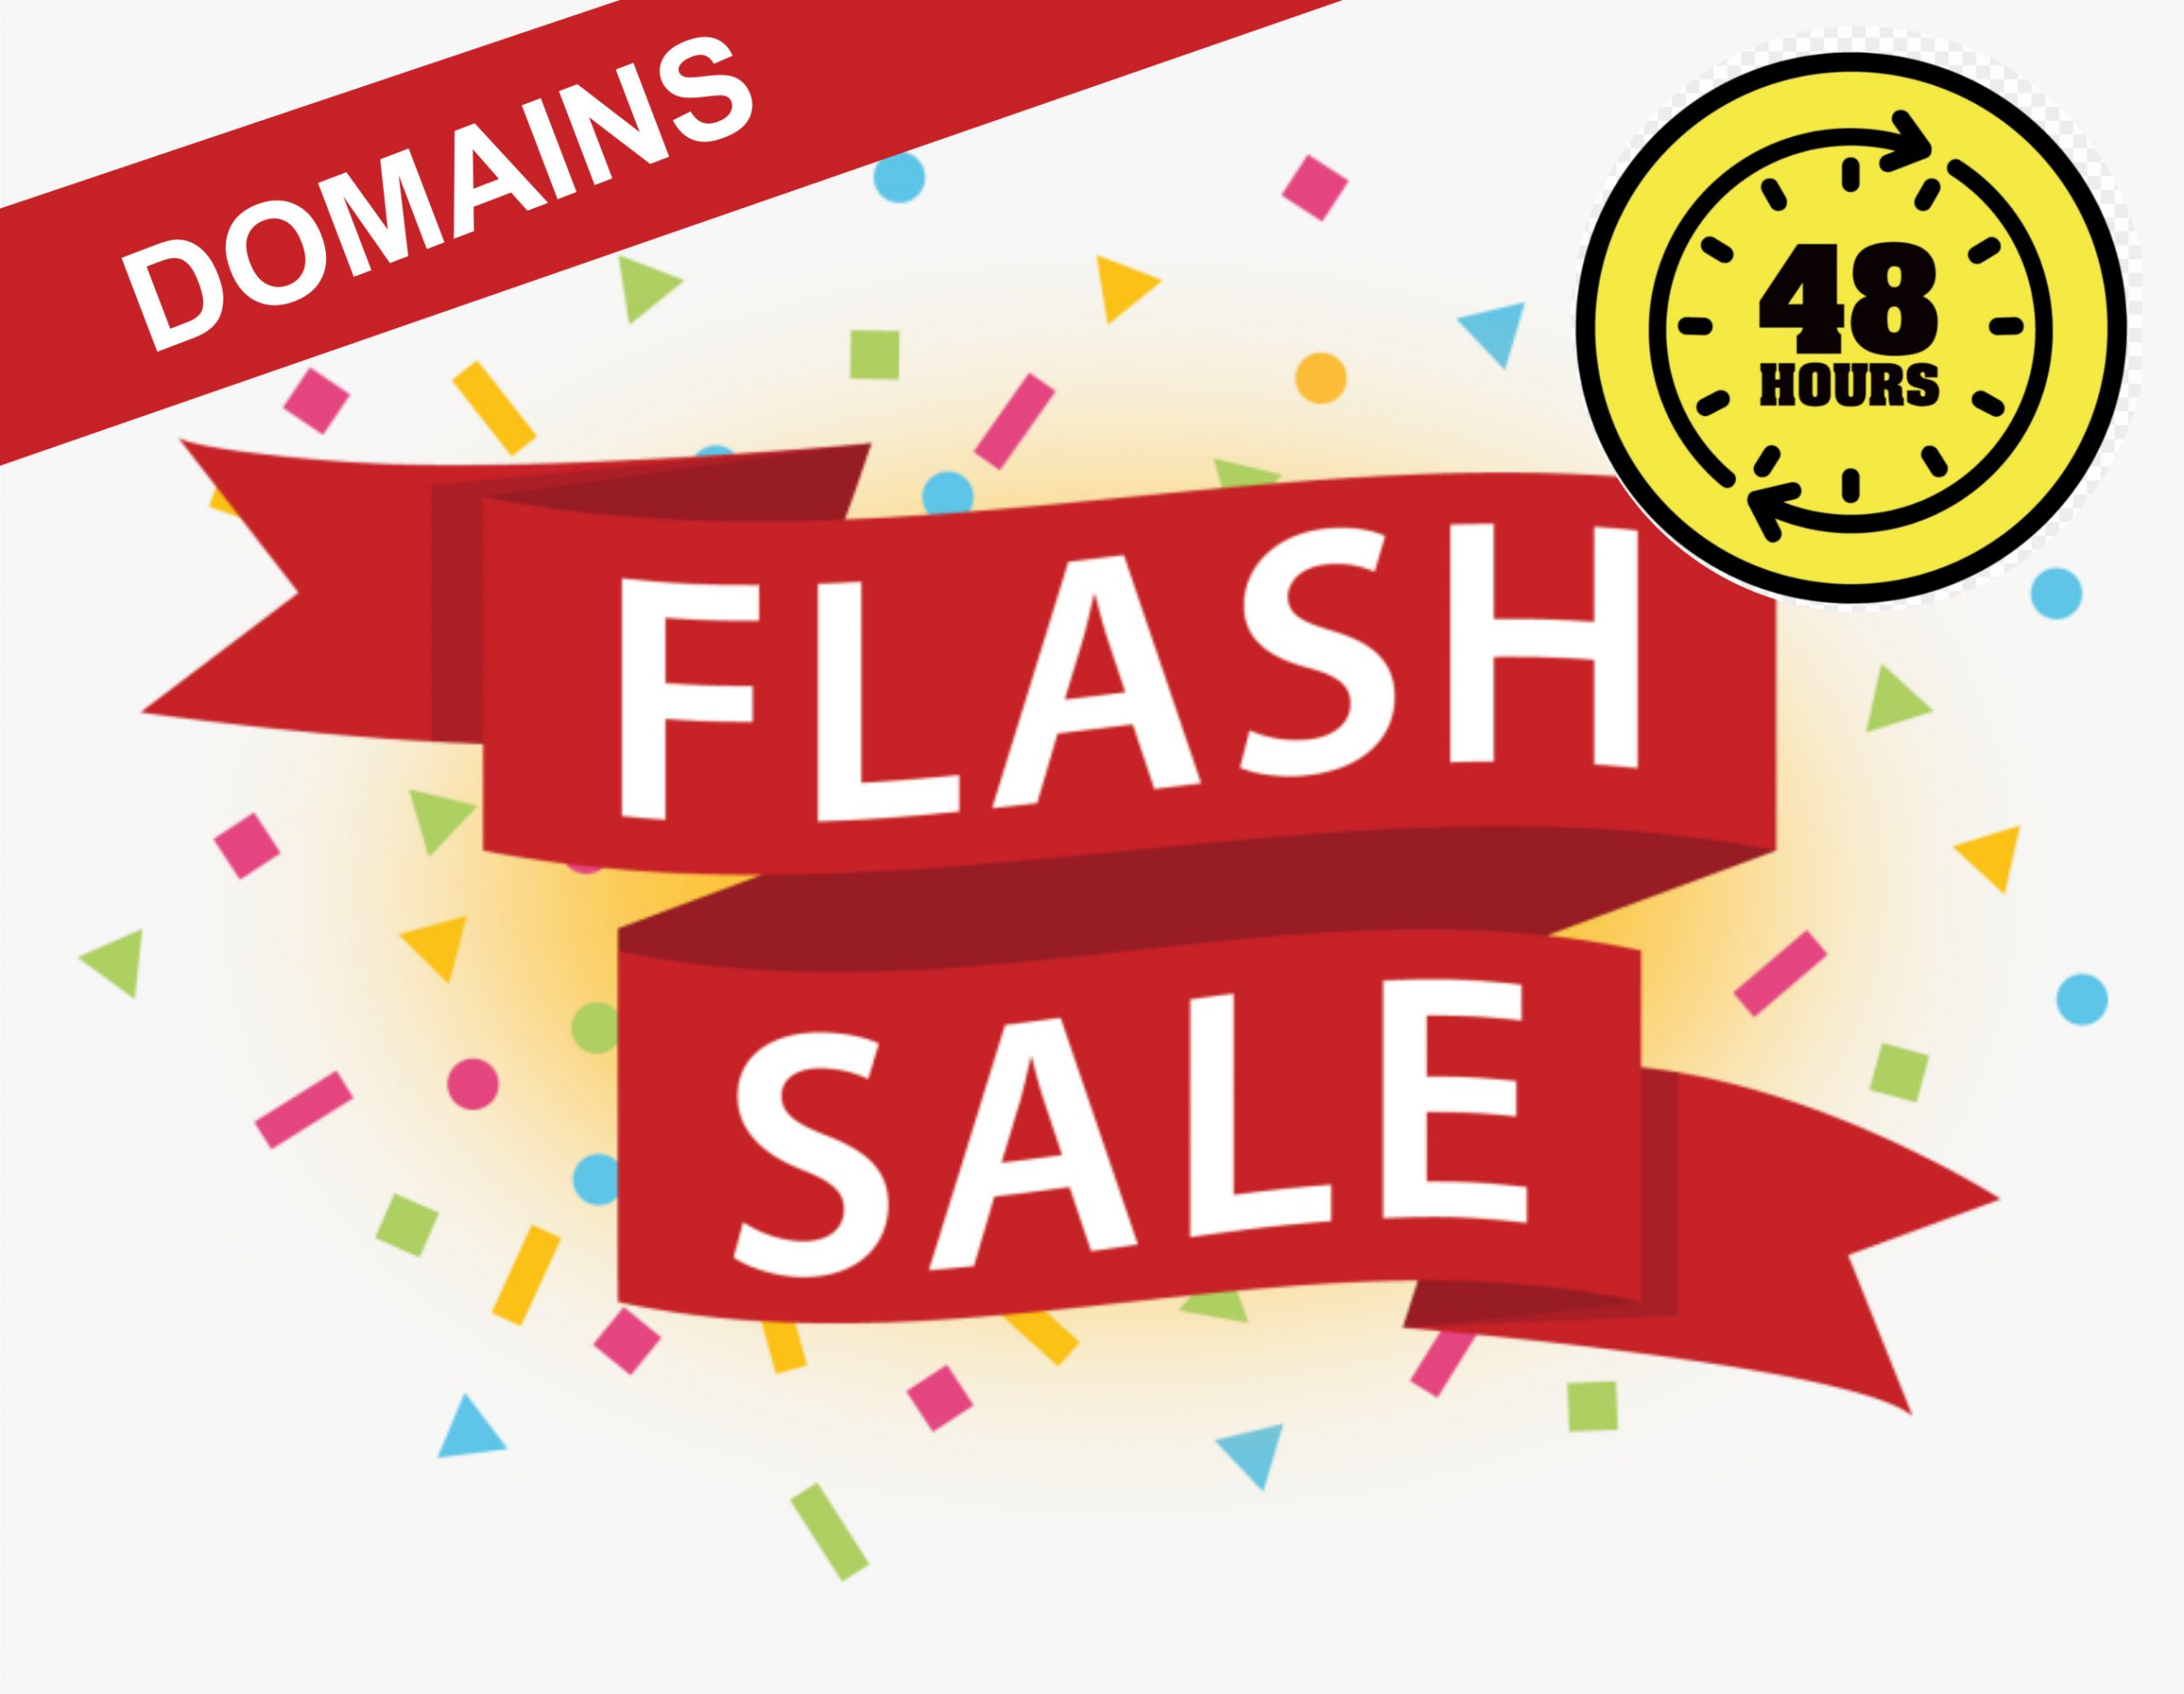 Domains Flash Sale Sri Lanka